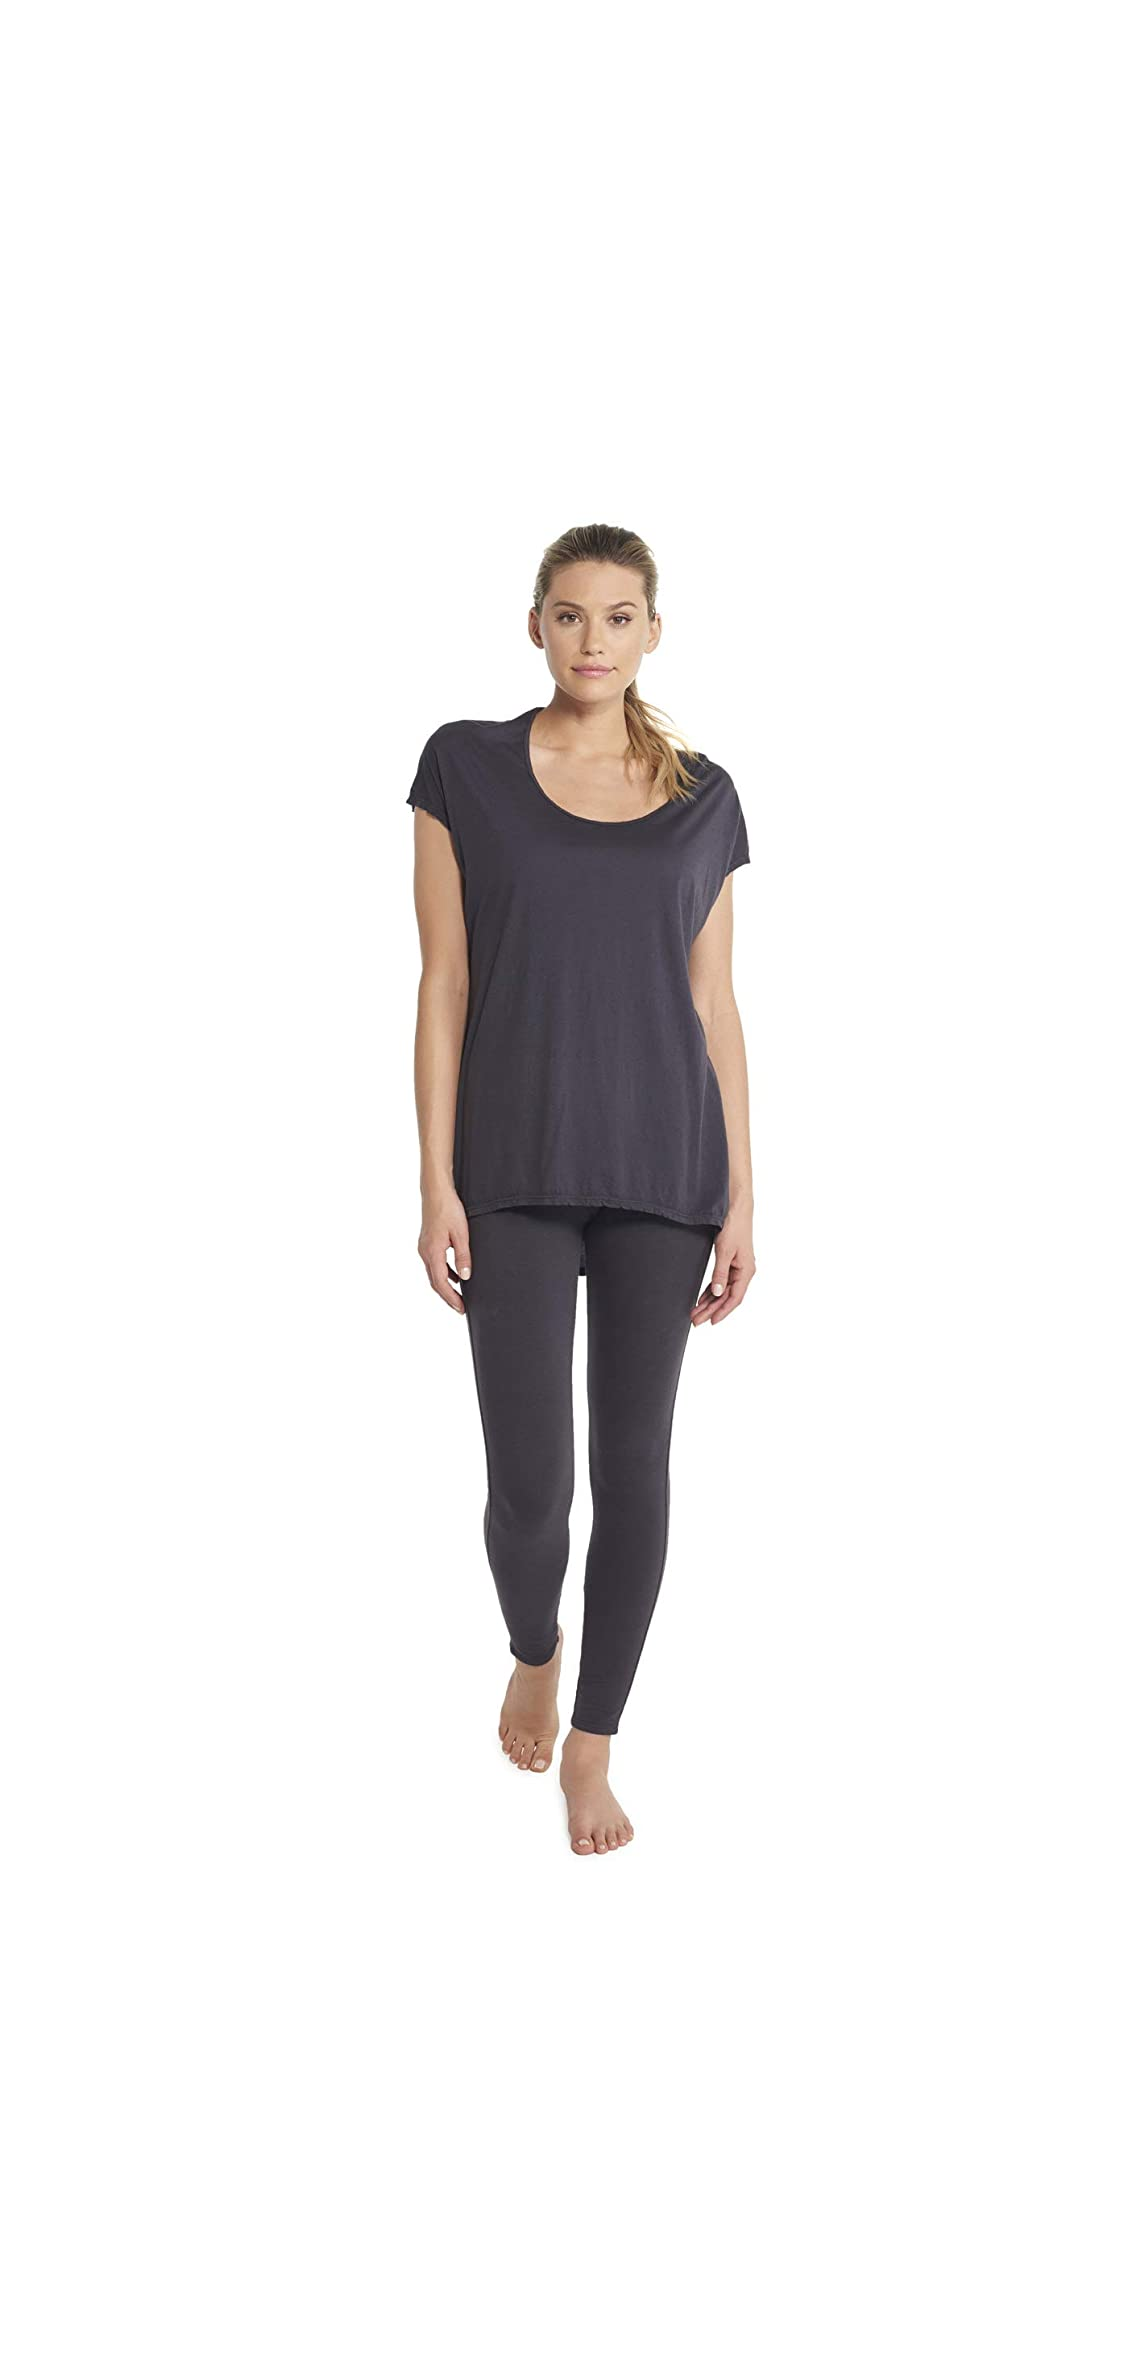 Capped Sleeve Tunic T-shirt For Women, Loose Fit